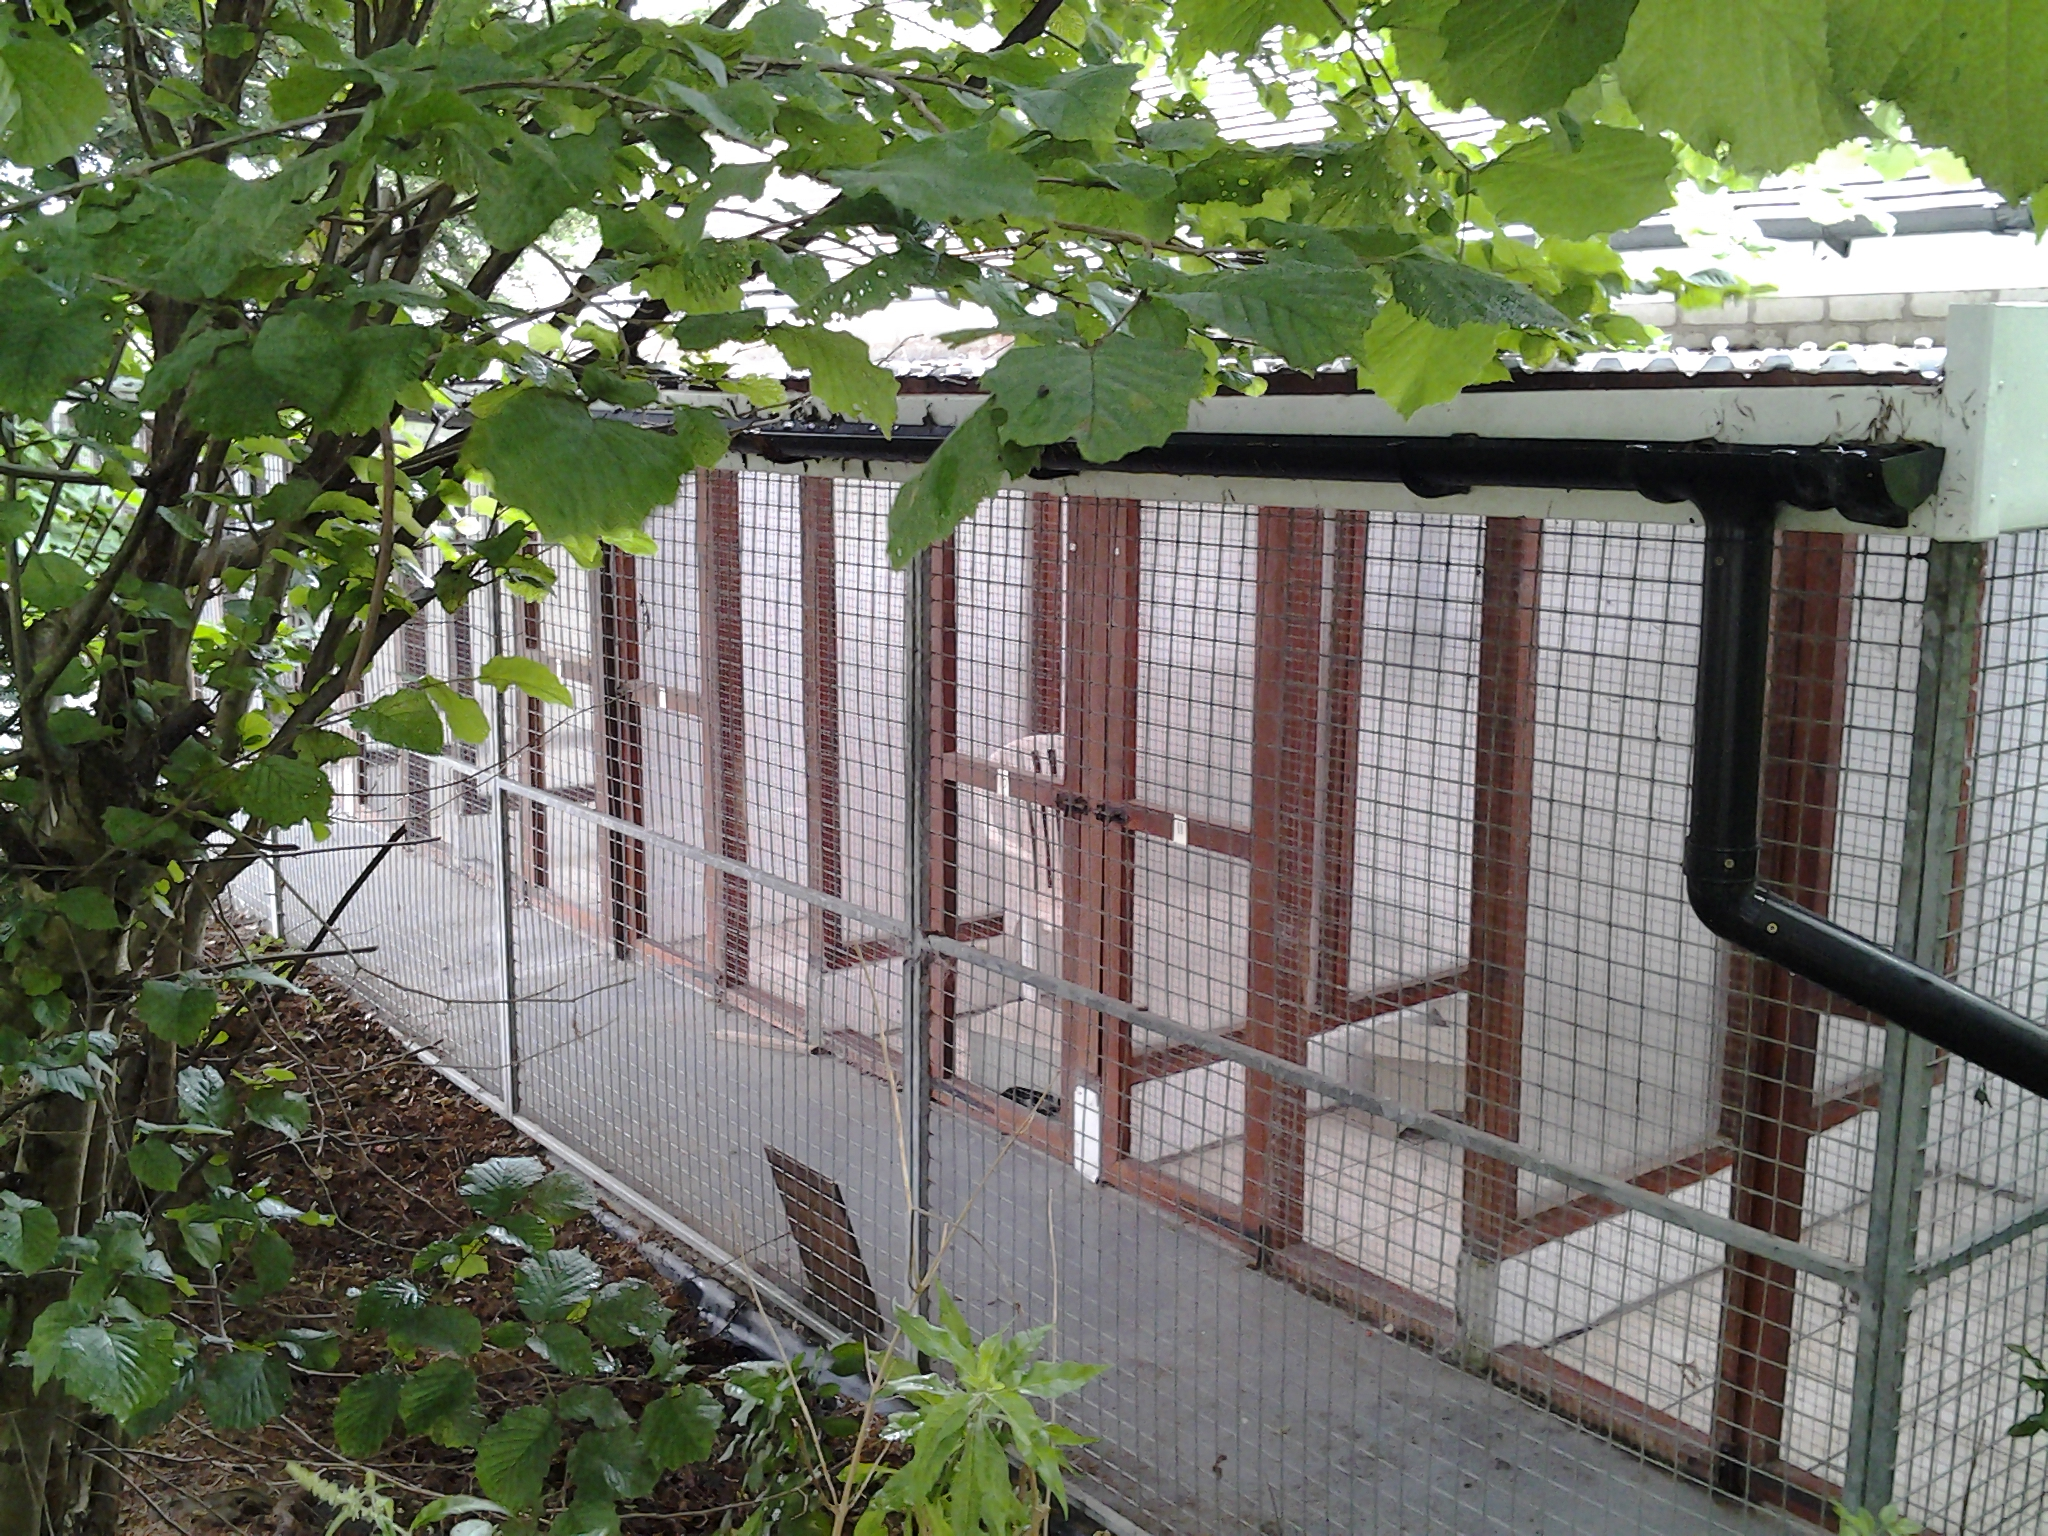 Northwood Grange Cats In An Outdoor Pen Picture